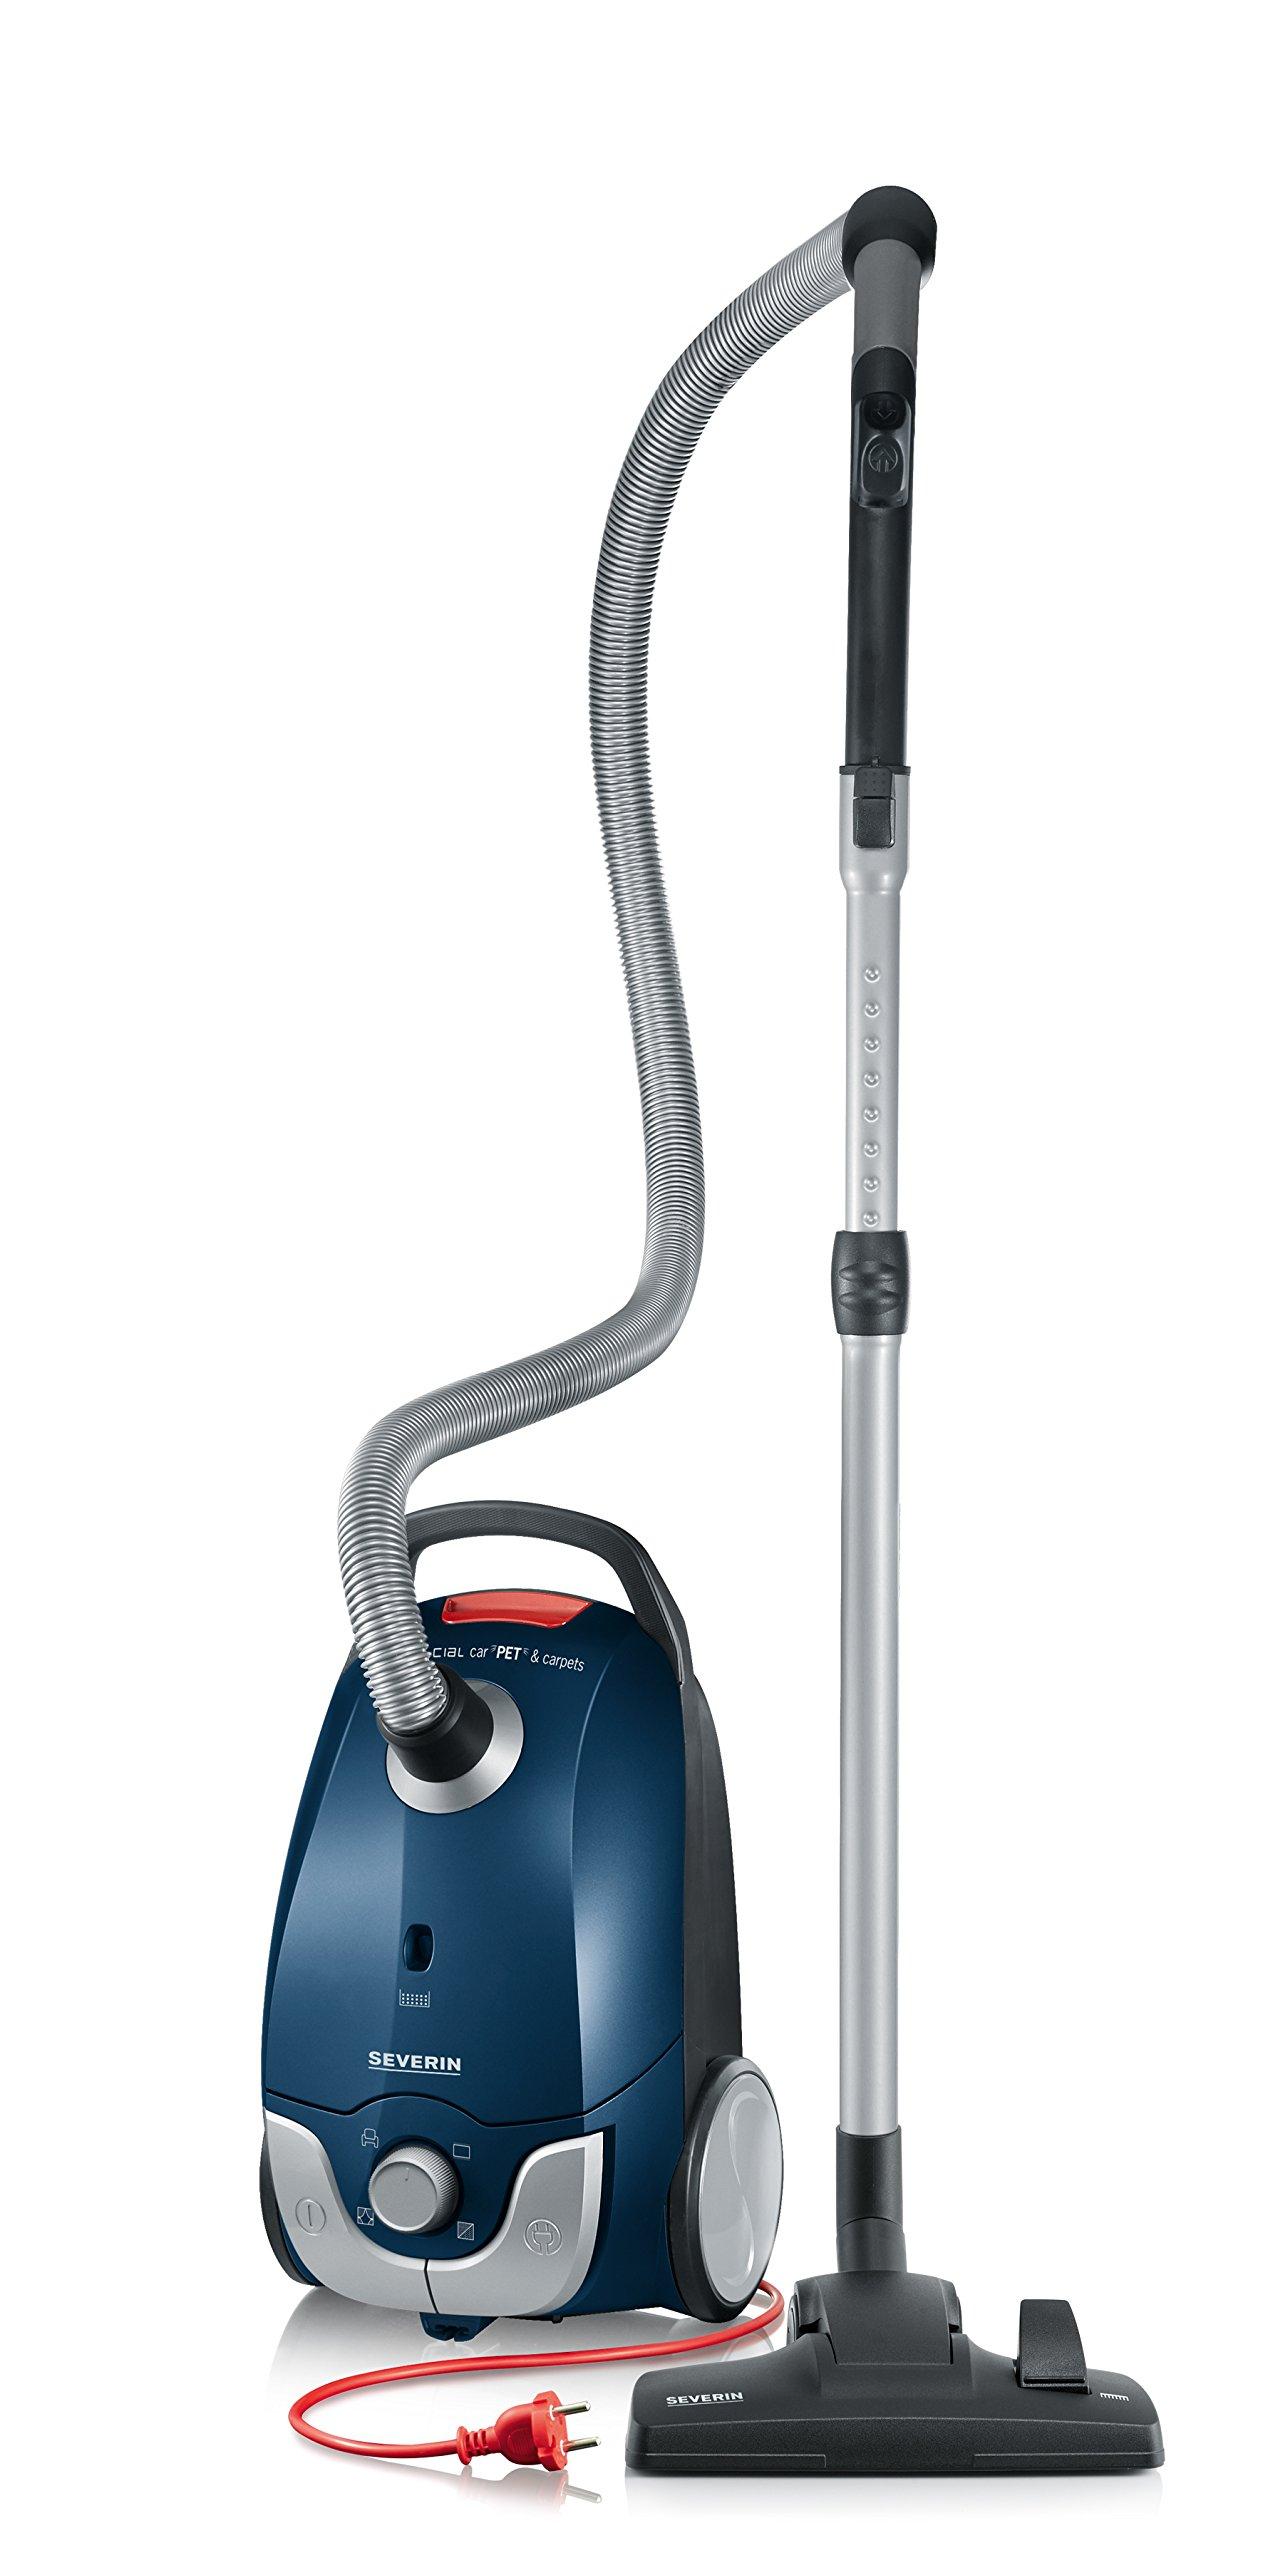 Severin Germany Special Vacuum Cleaner Corded, Ocean Blue